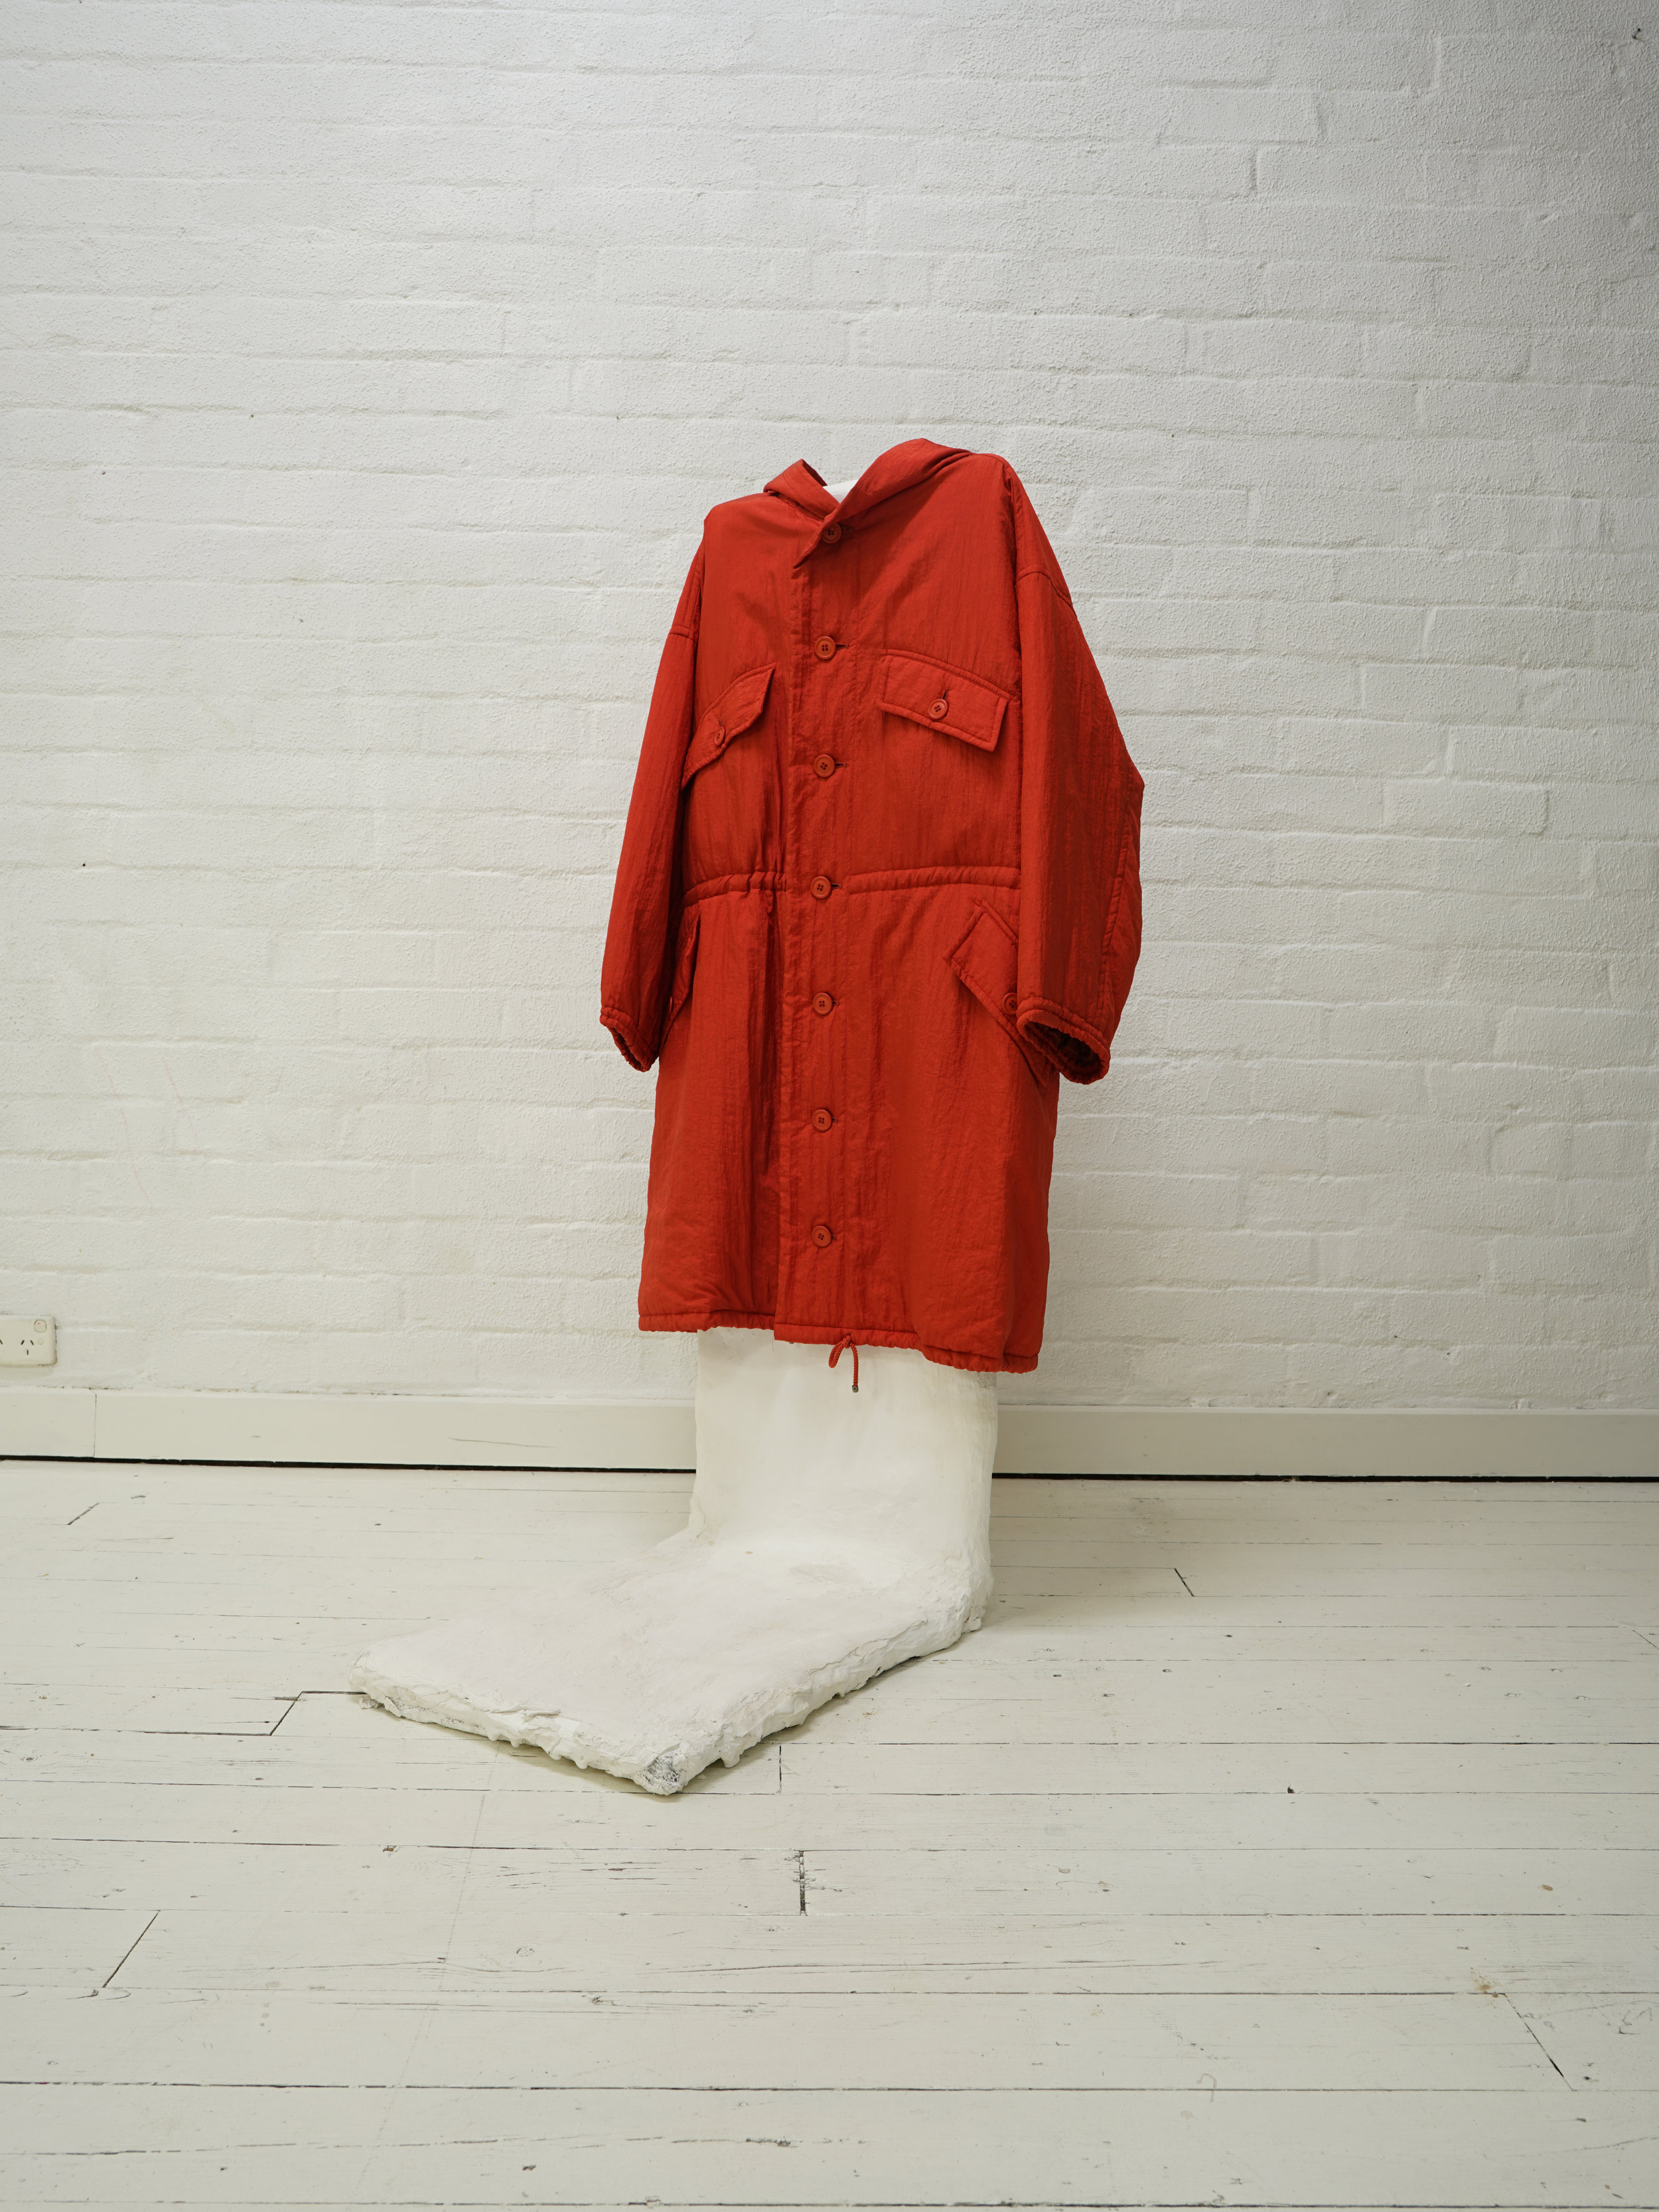 late 70s windcoat/ issey miyake multi-pocket hood coat from the filter store collection